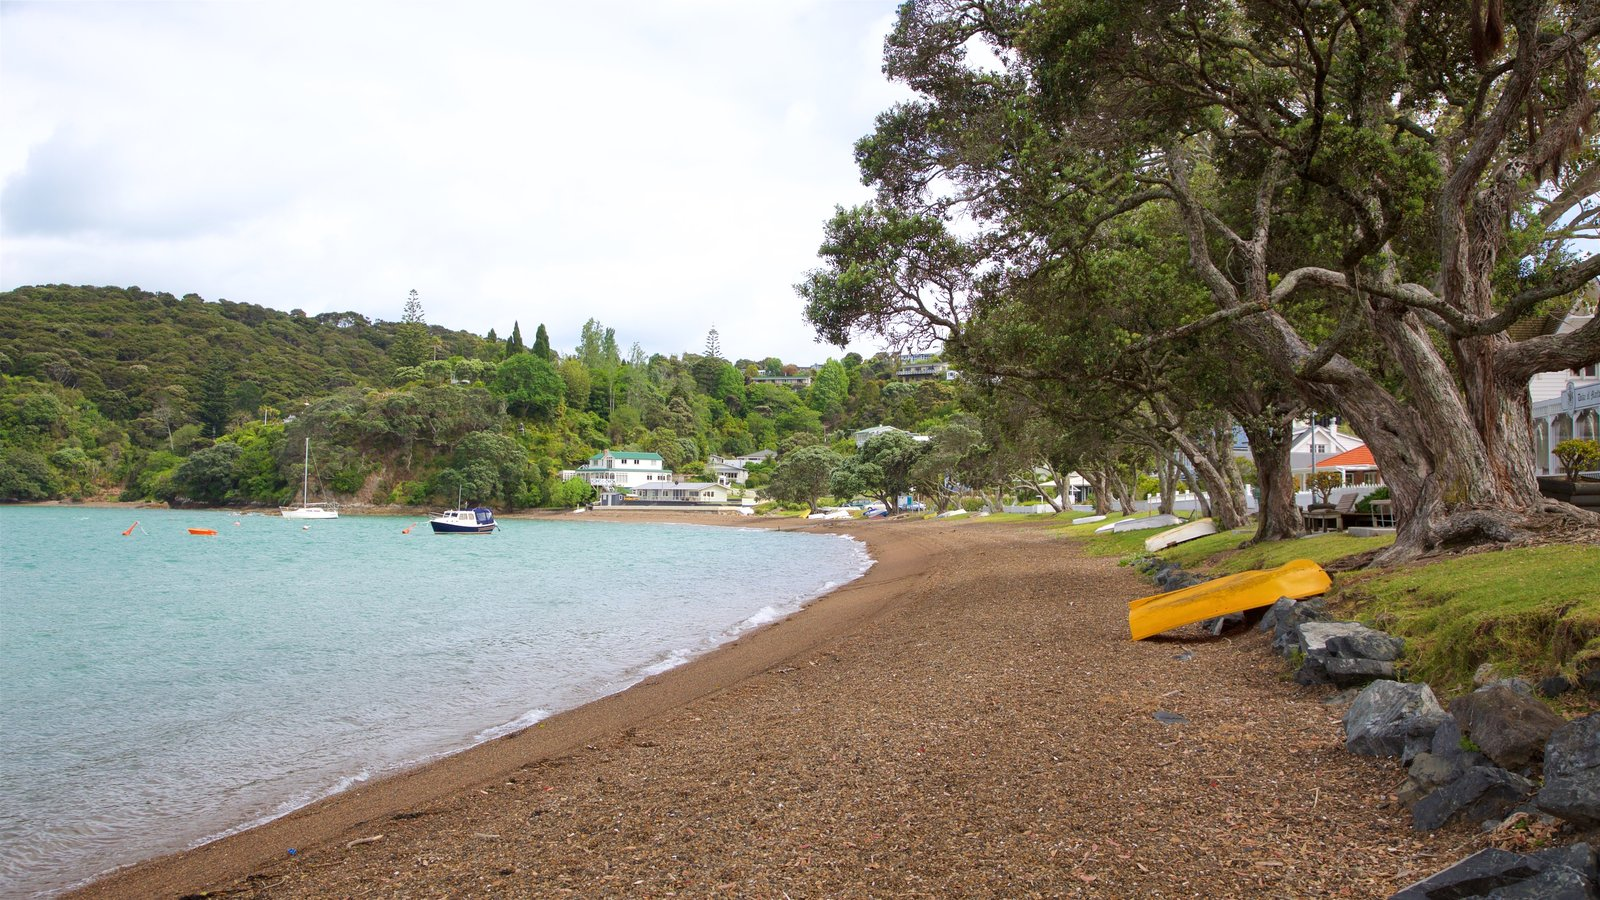 Russell Beach which includes a pebble beach and a bay or harbor